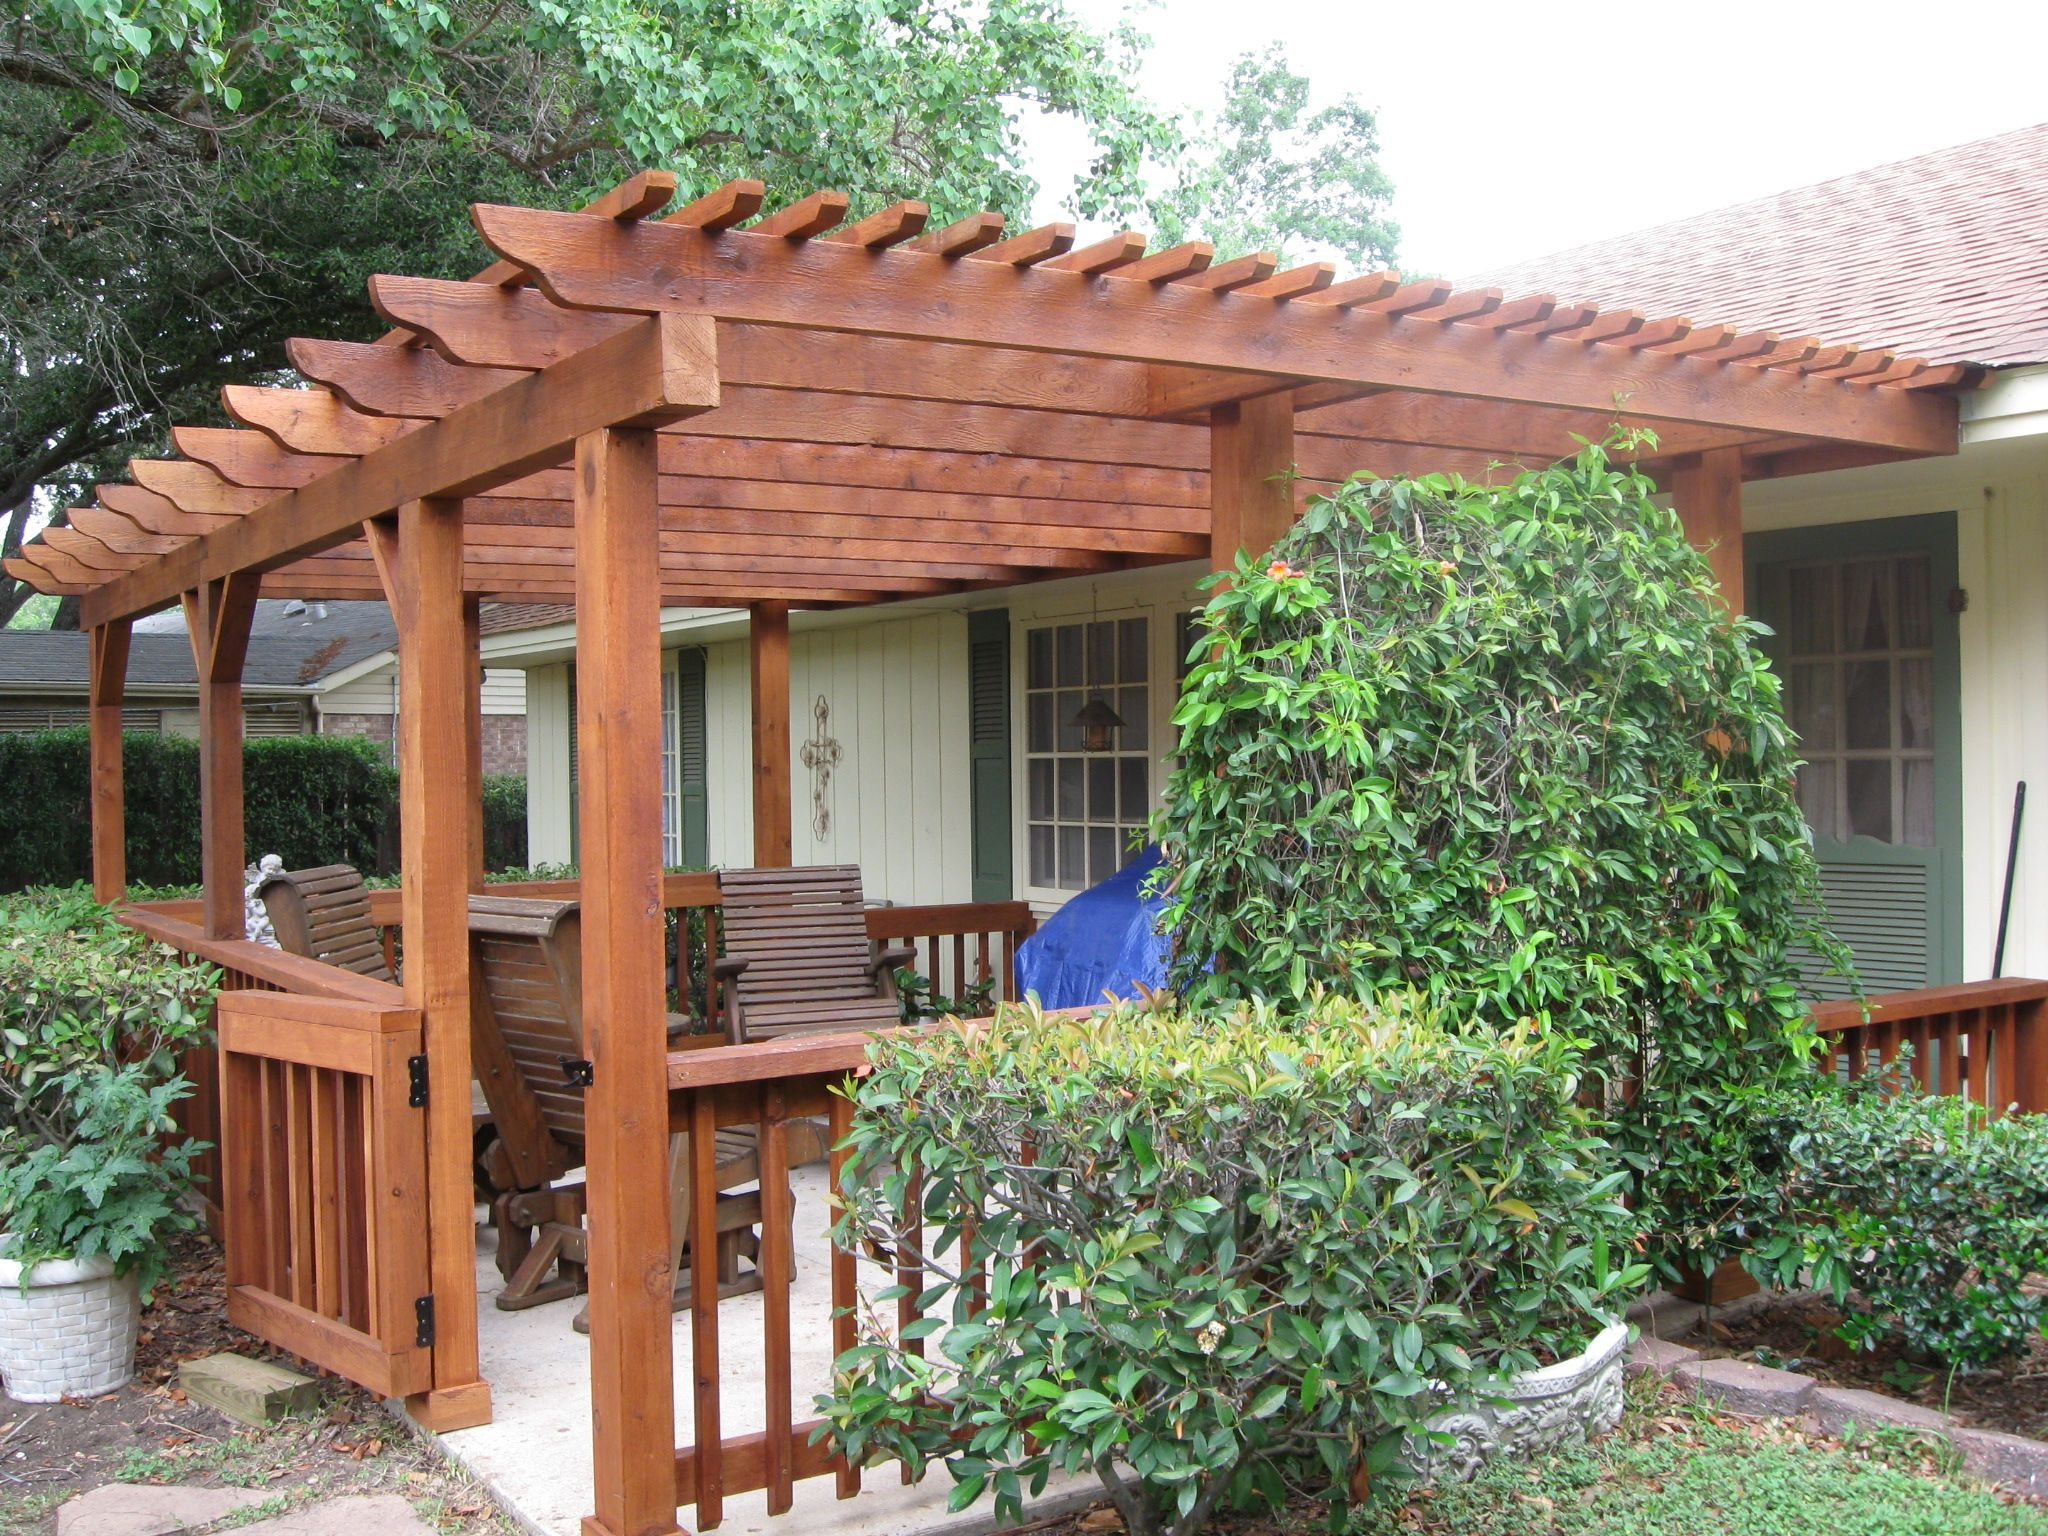 Cost to build pergola - 17 Best Images About Pergola S On Pinterest Lattice Garden Decks And Backyards